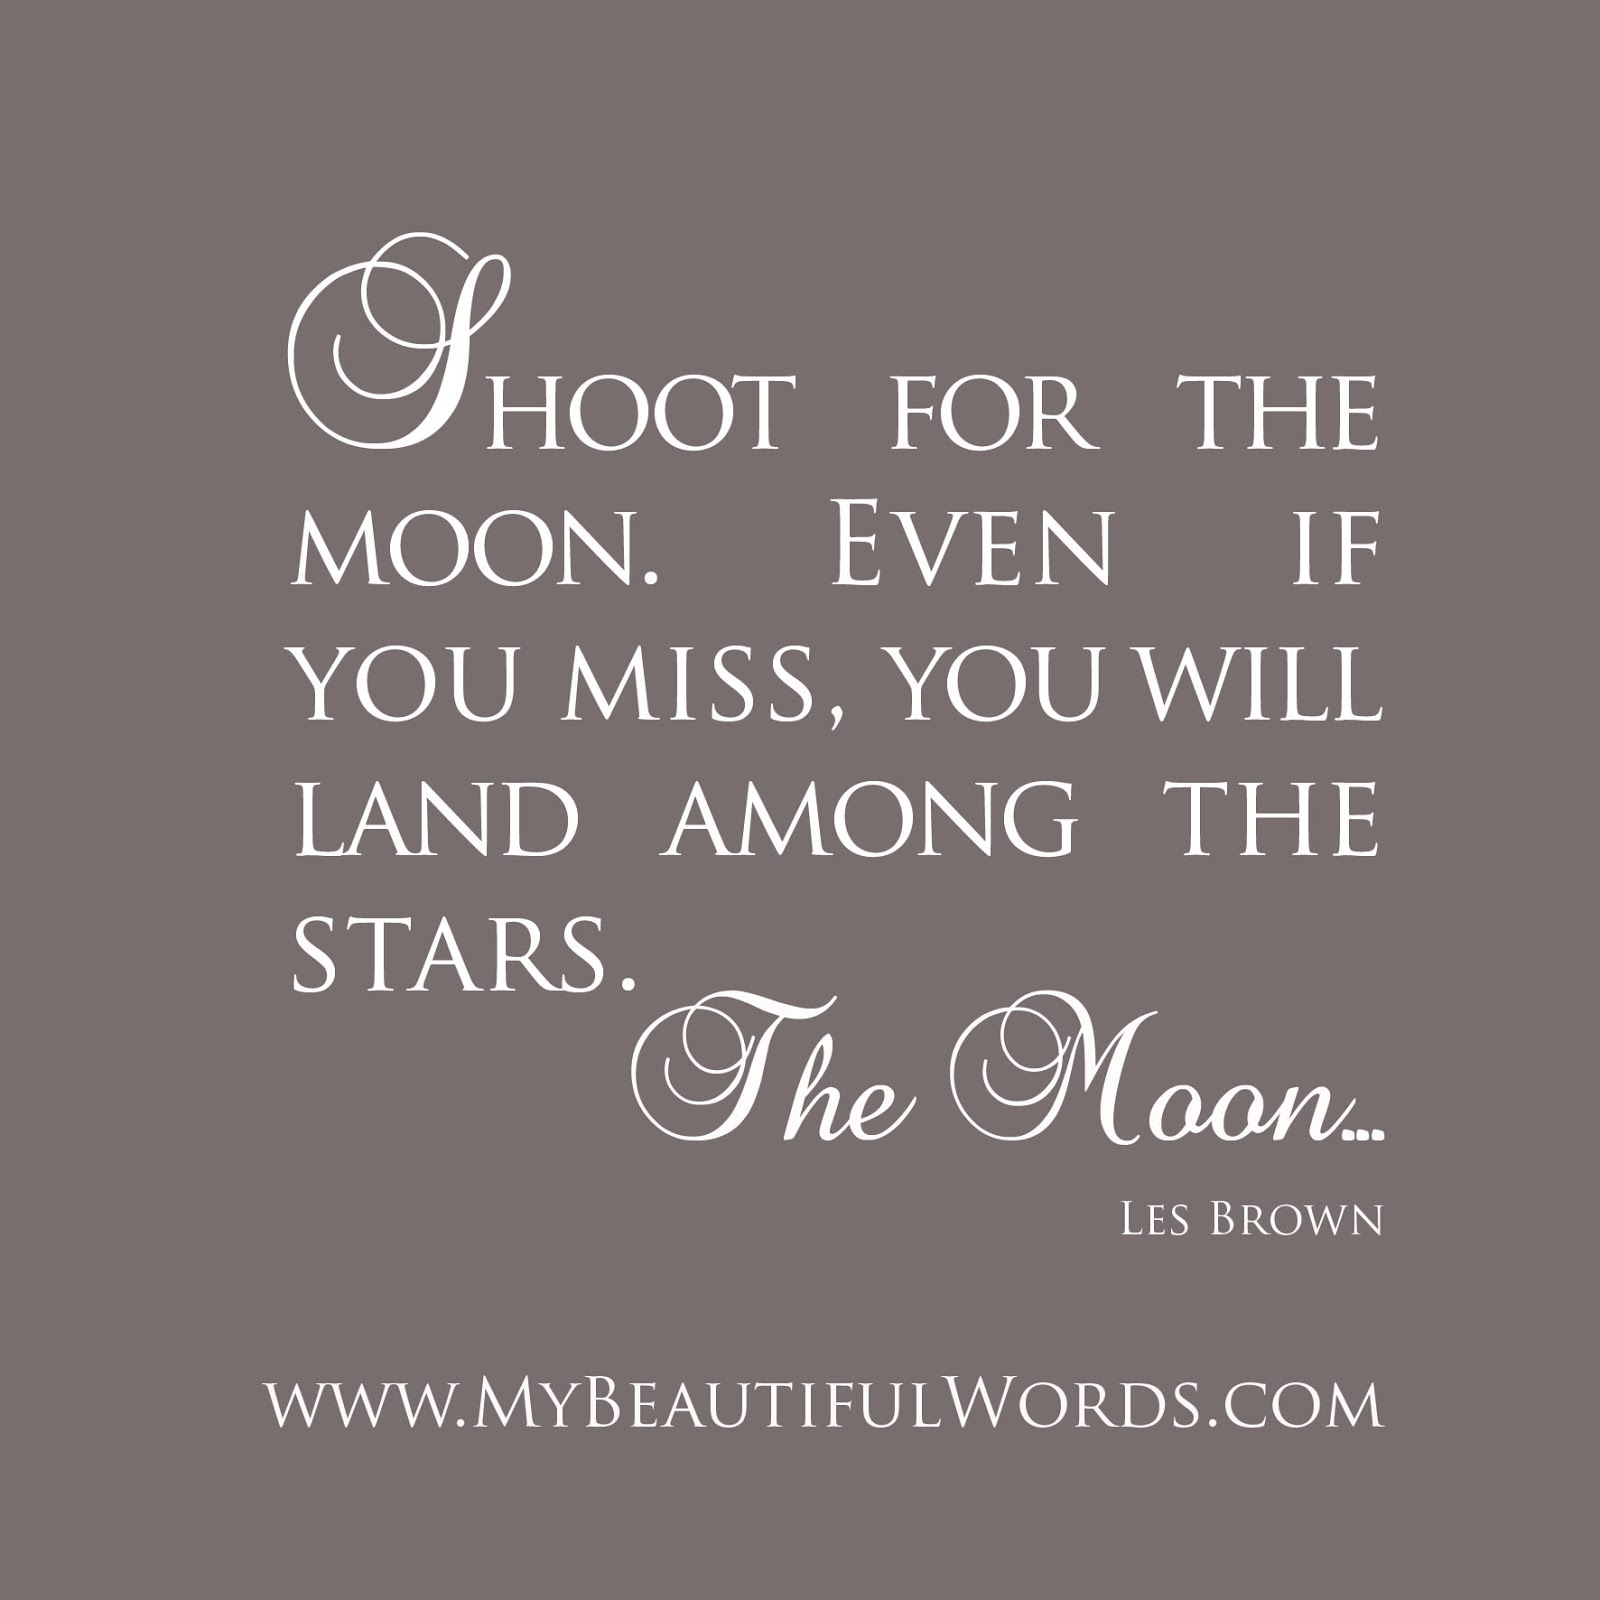 My Beautiful Words Shoot For The Moon